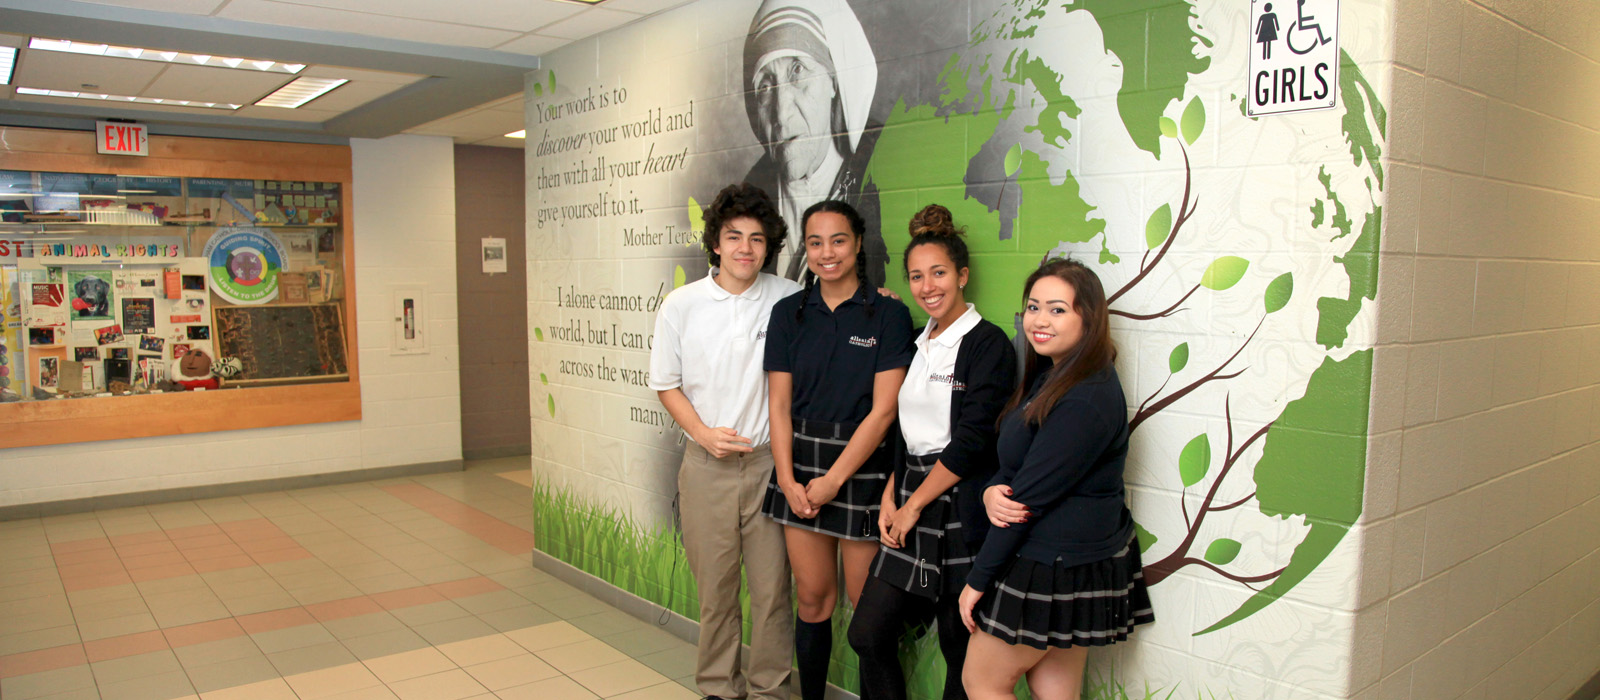 four students standing in front of a mural depicting a quote and picture of Mother Teresa.